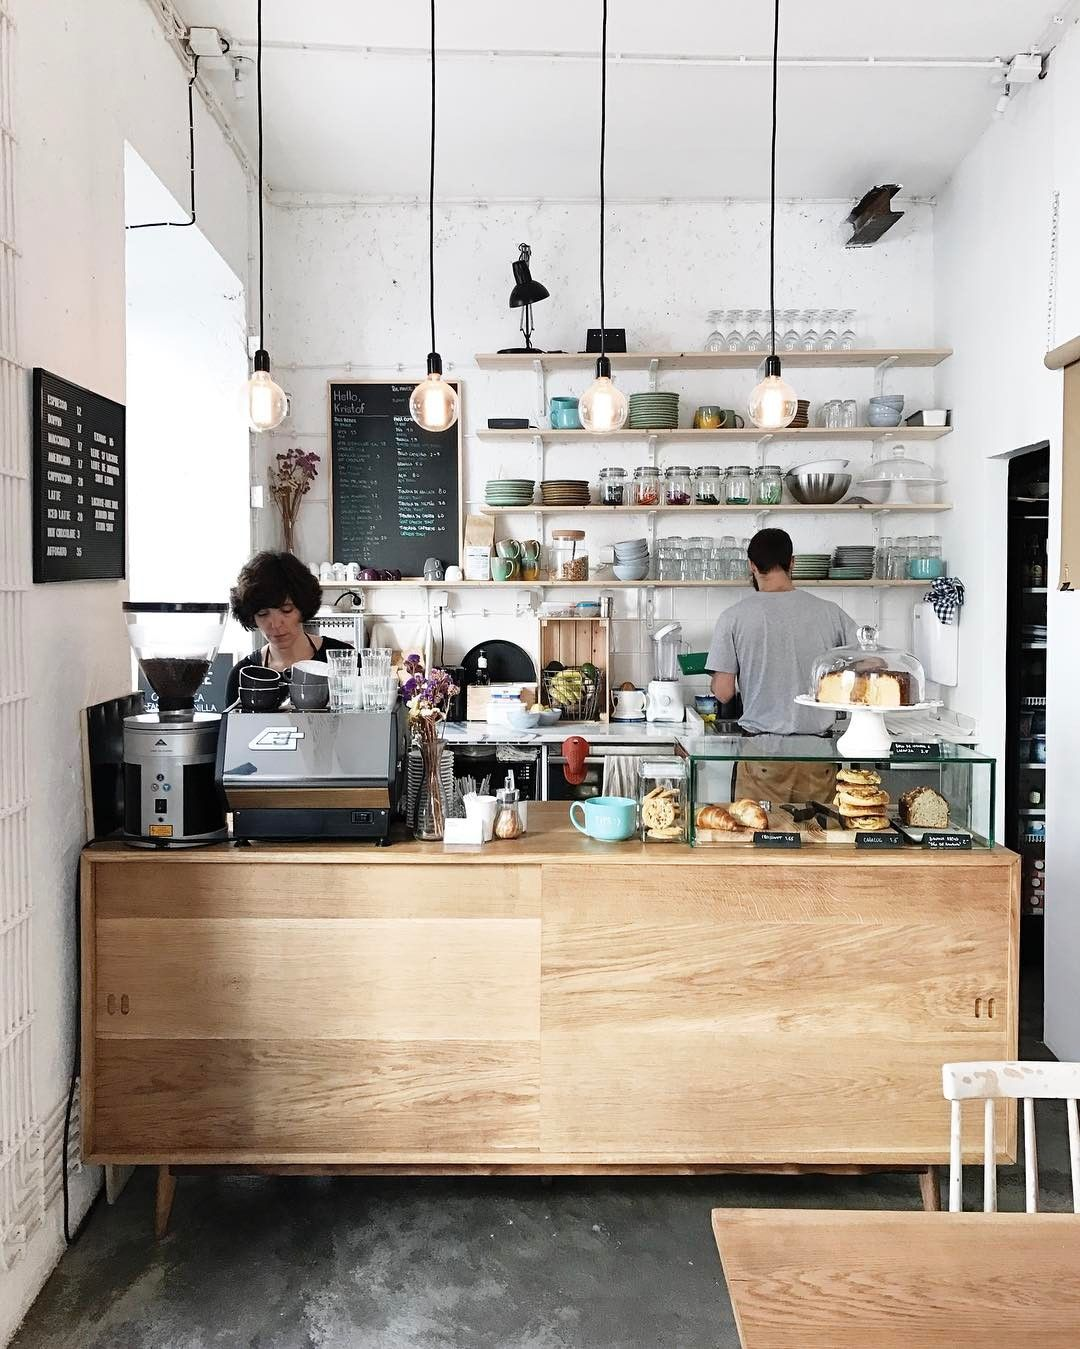 Anything Better Than Starting The Weekend At A Cool Coffee Spot This Is Hellokristof In Lisbon Th Coffee Bar Design Coffee Shops Interior Coffee Shop Decor